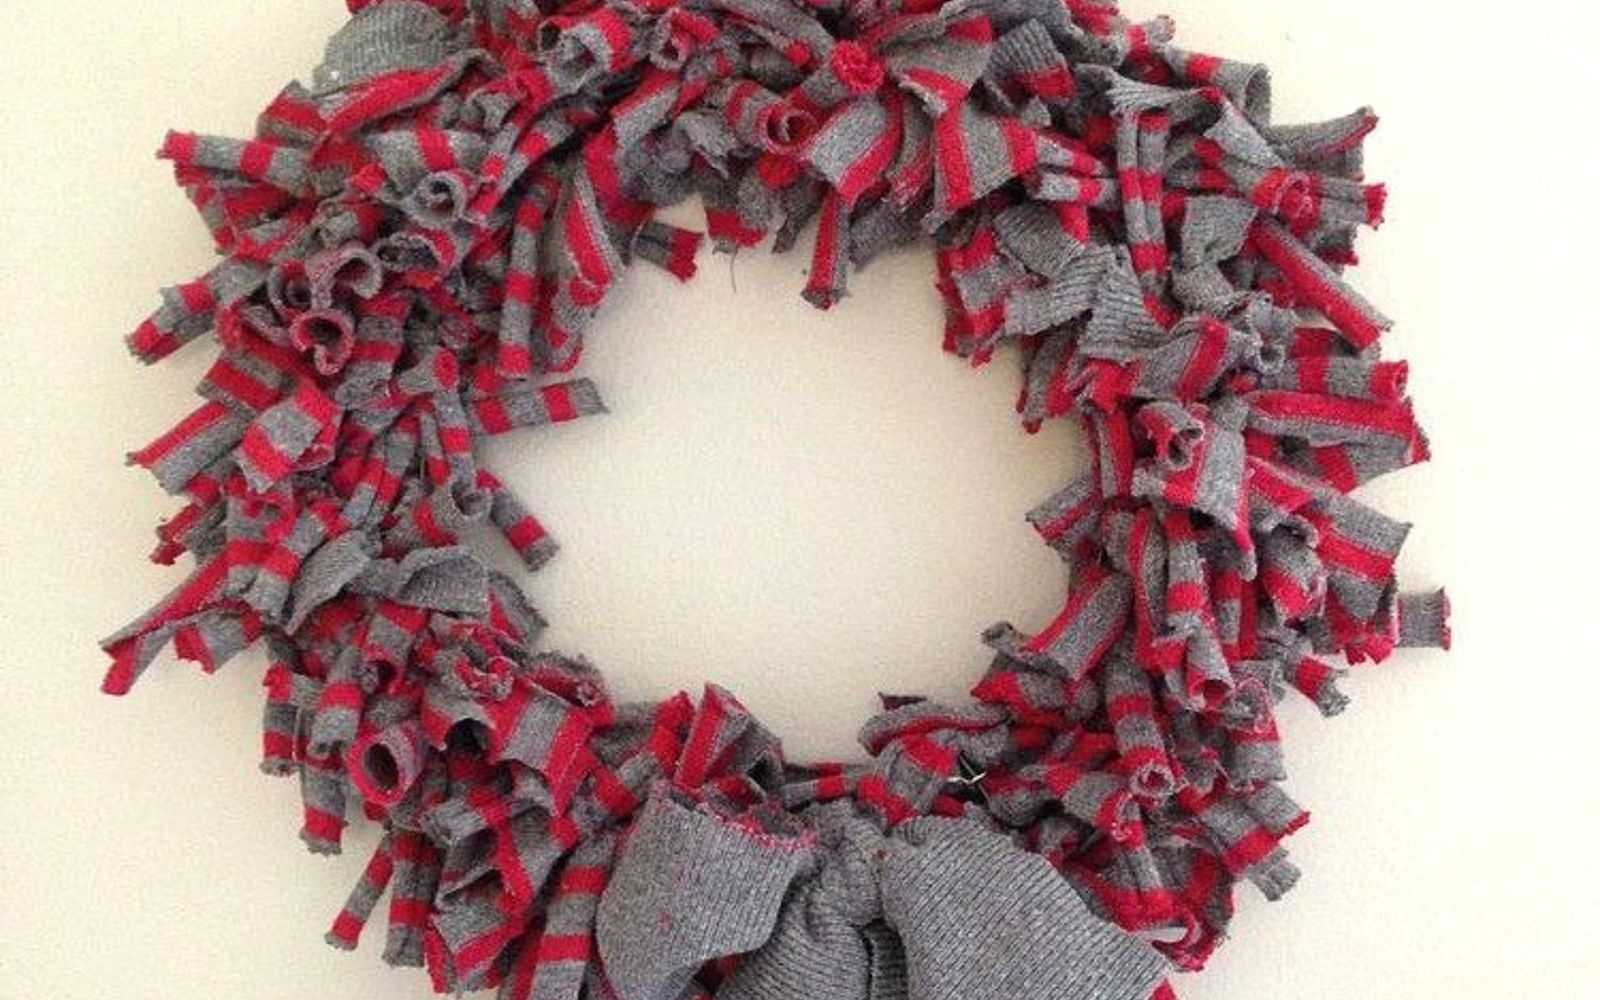 s 15 reasons not to trash your ugly worn out sweaters, crafts, repurposing upcycling, Cut strips and make a rag wreath